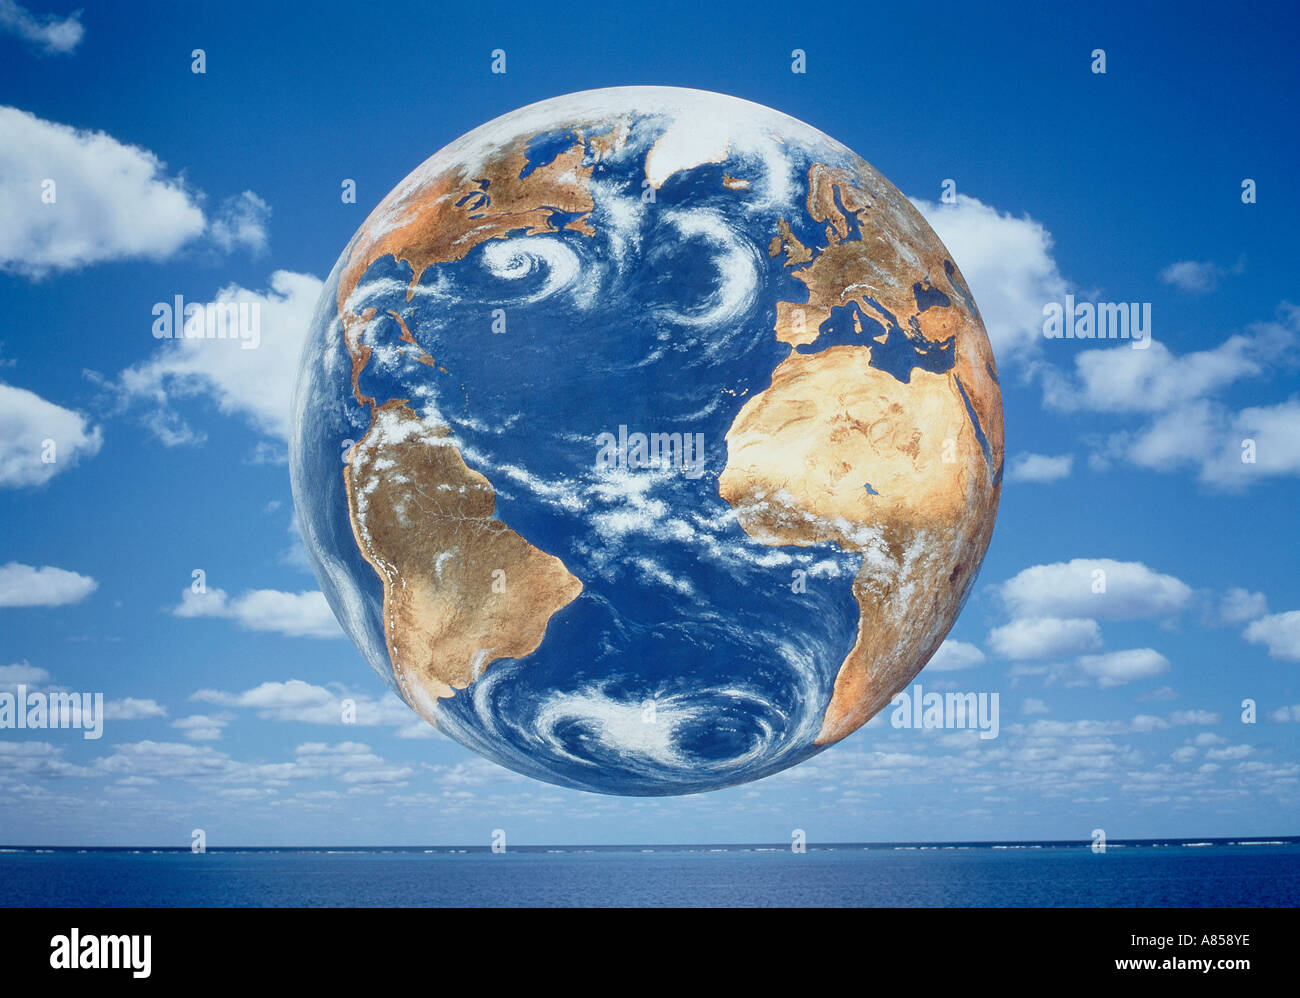 Concept illustration of planet Earth floating in blue sky above ocean horizon. - Stock Image